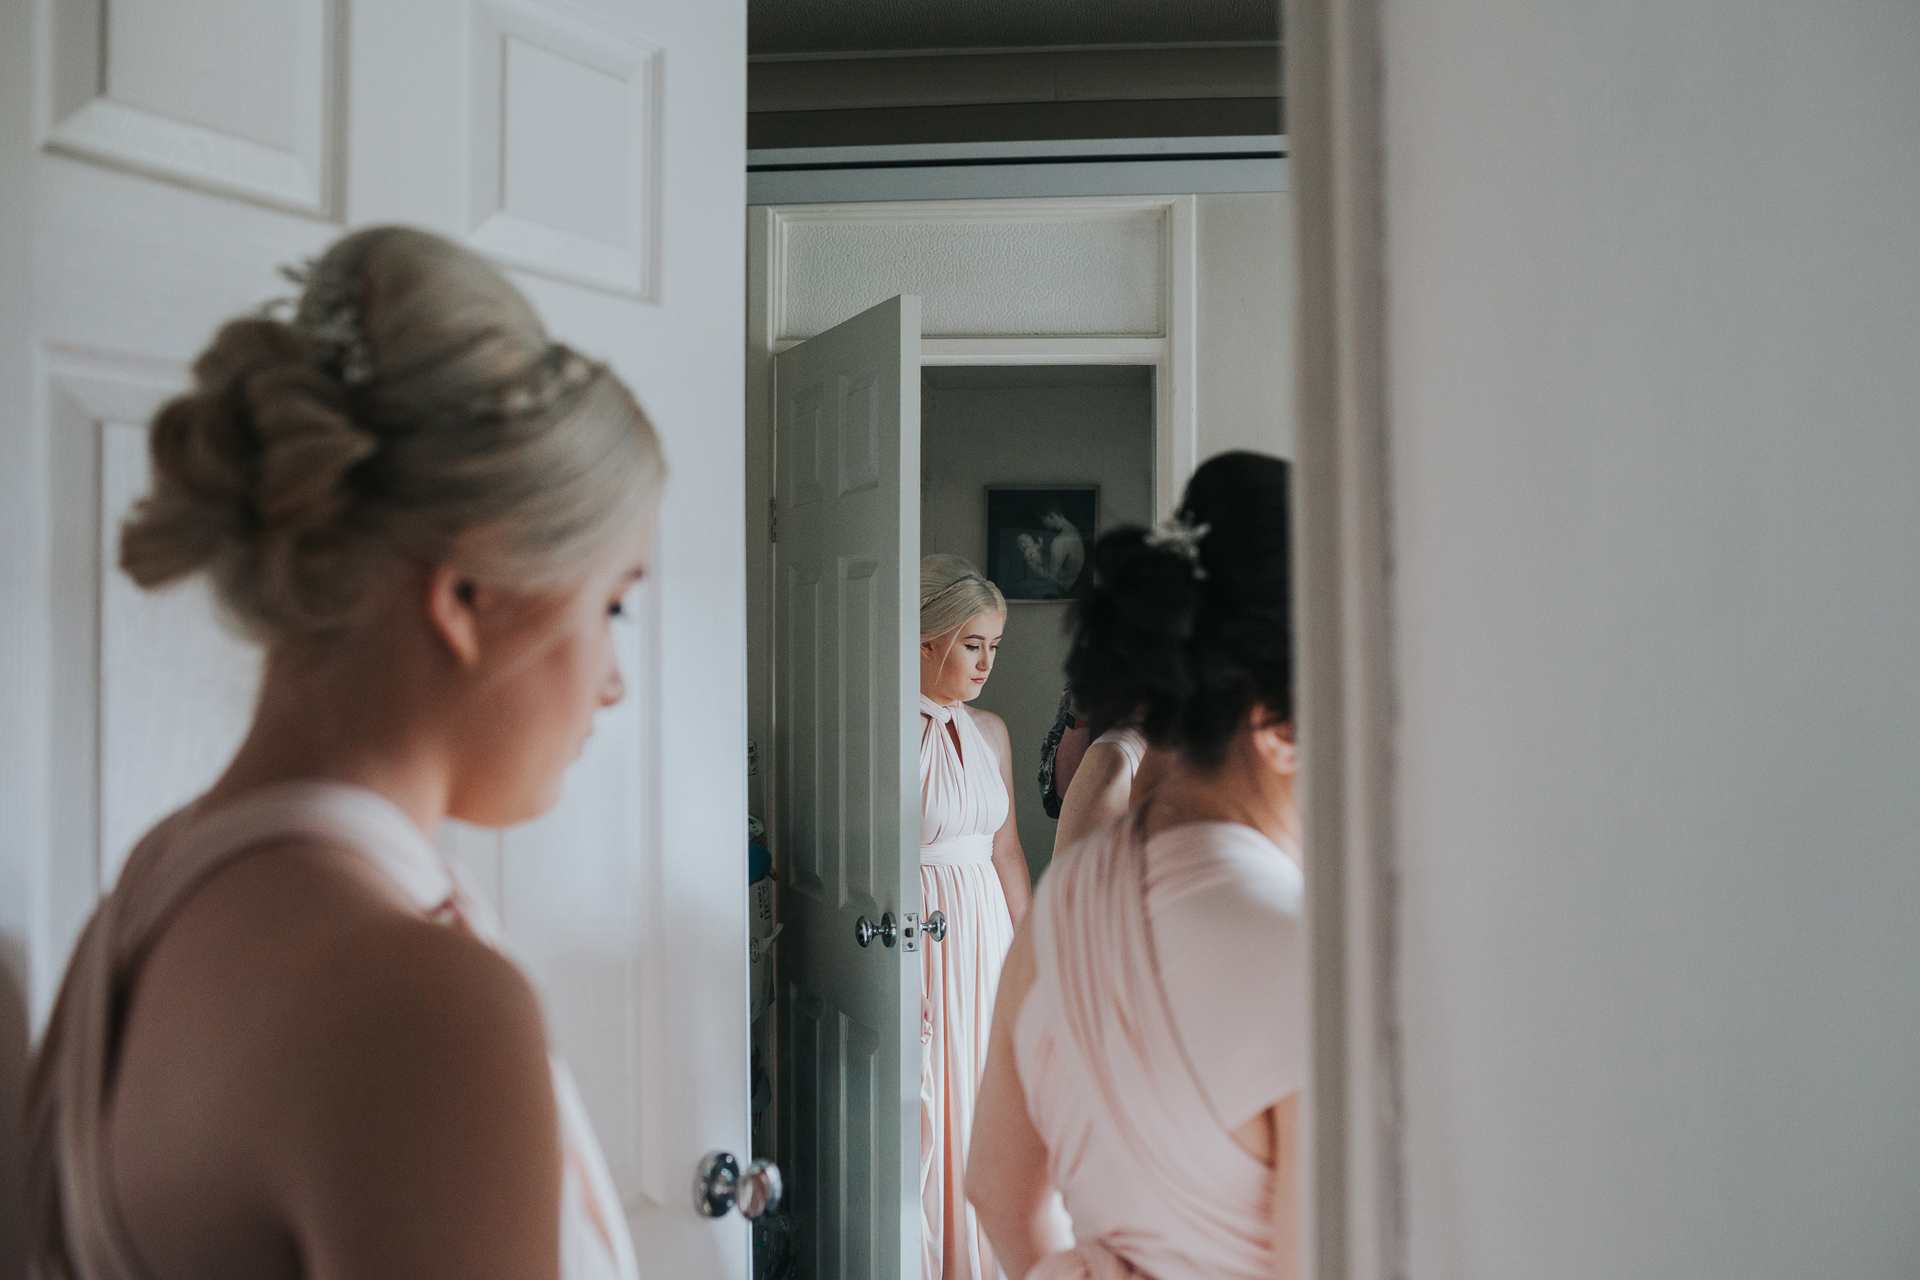 Bridesmaid waits outside the door for the bride, we see her in the foreground and back ground of the photograph as she is reflected in the mirror beyond the door.